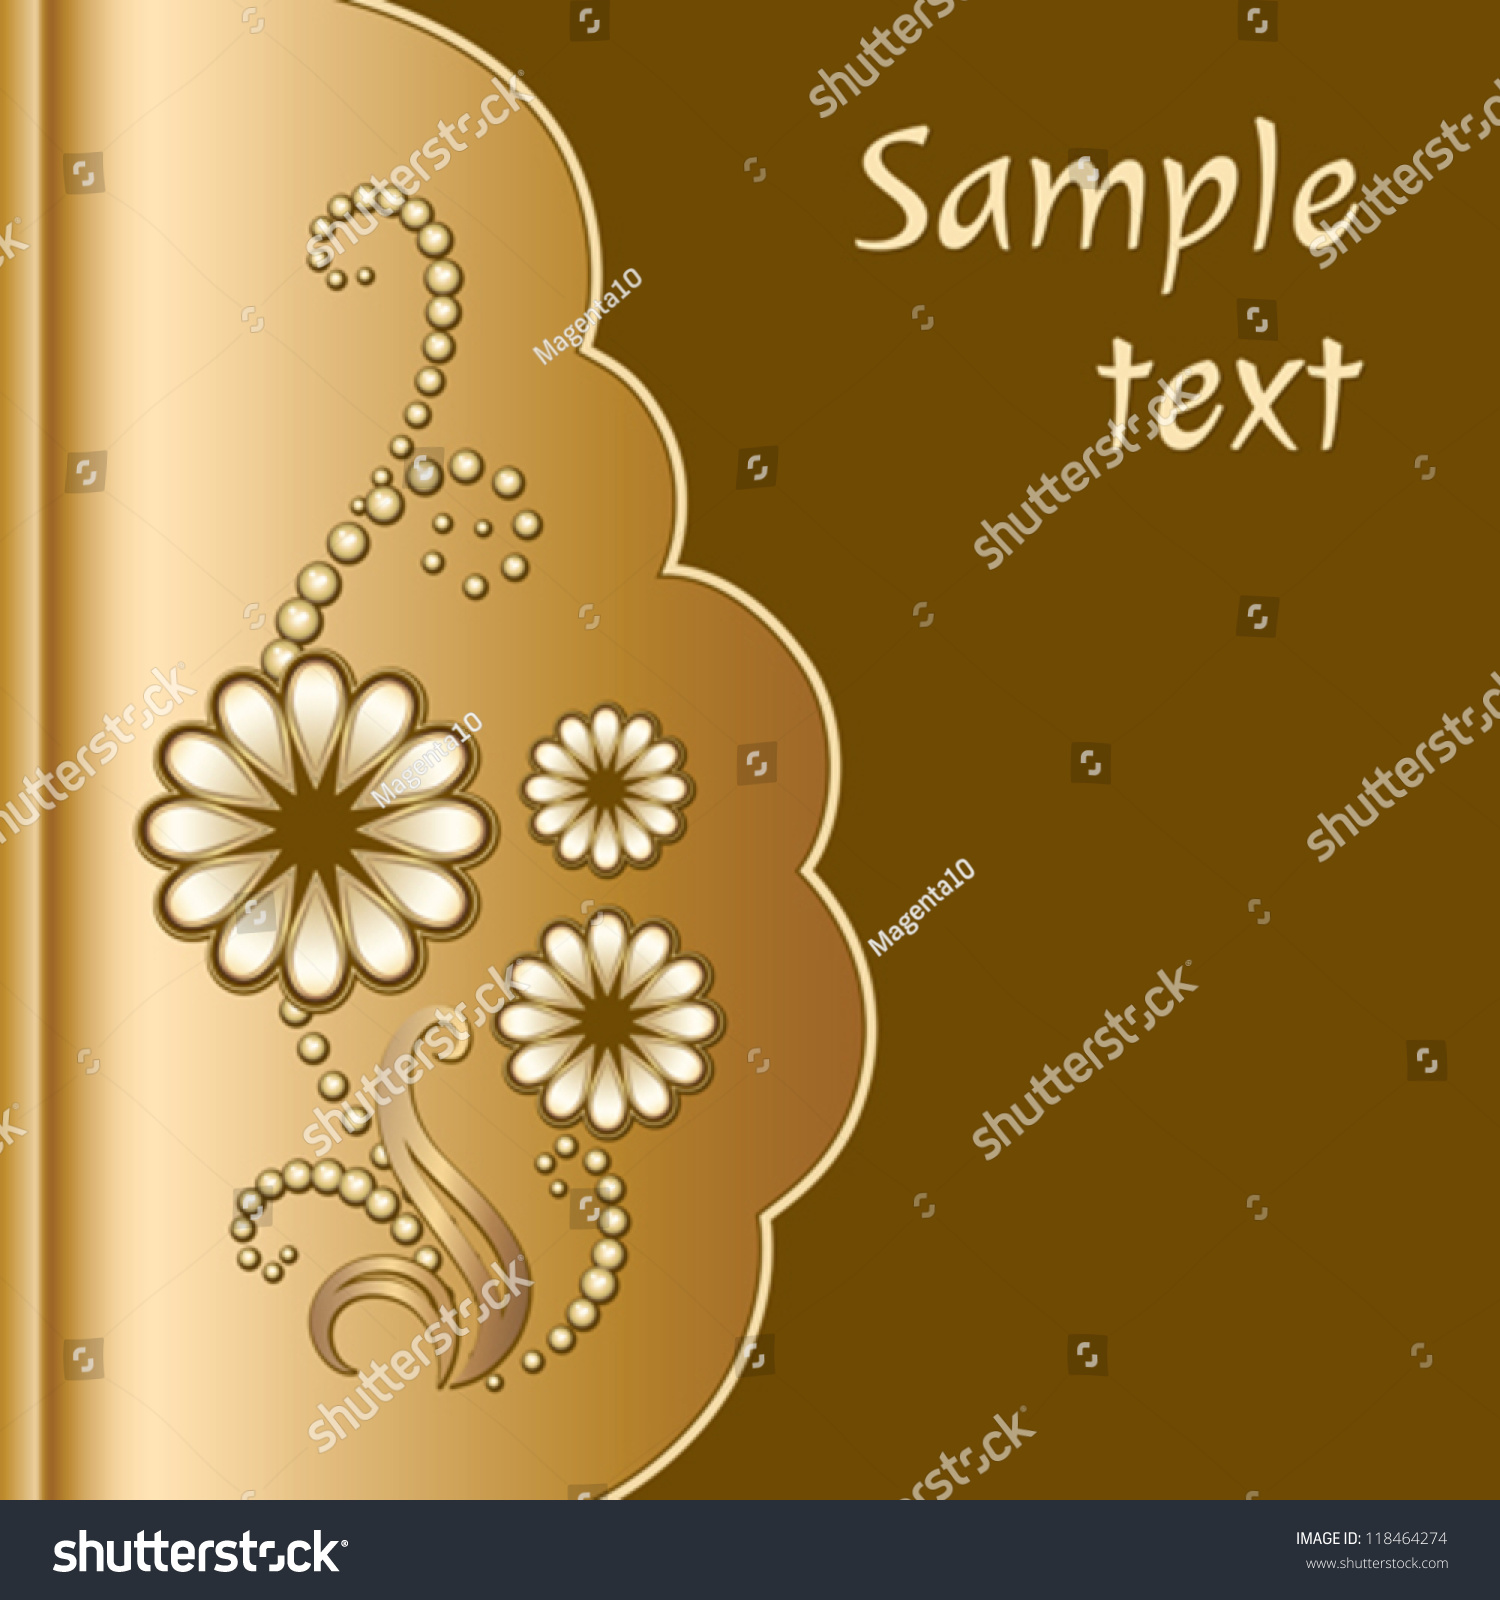 Scrapbook cover - Gold Scrapbook Cover With Jewelry Flowers Decorative Vector Background